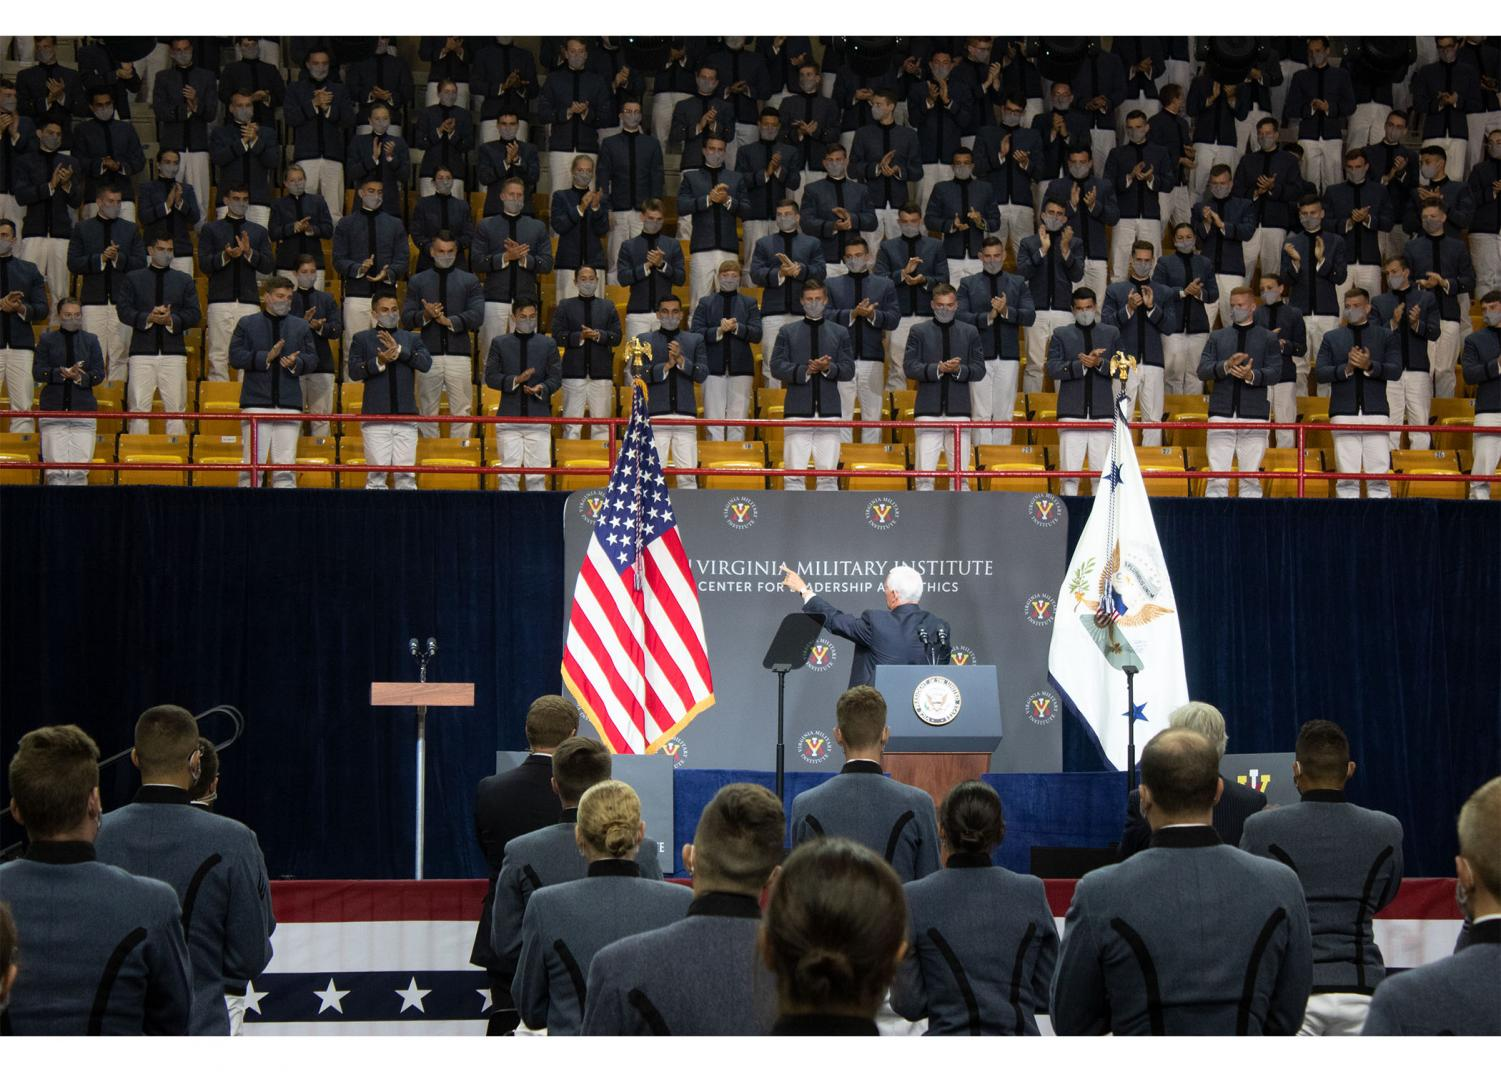 Pence greeted VMI cadets before his speech. Photo by Jin Ni,